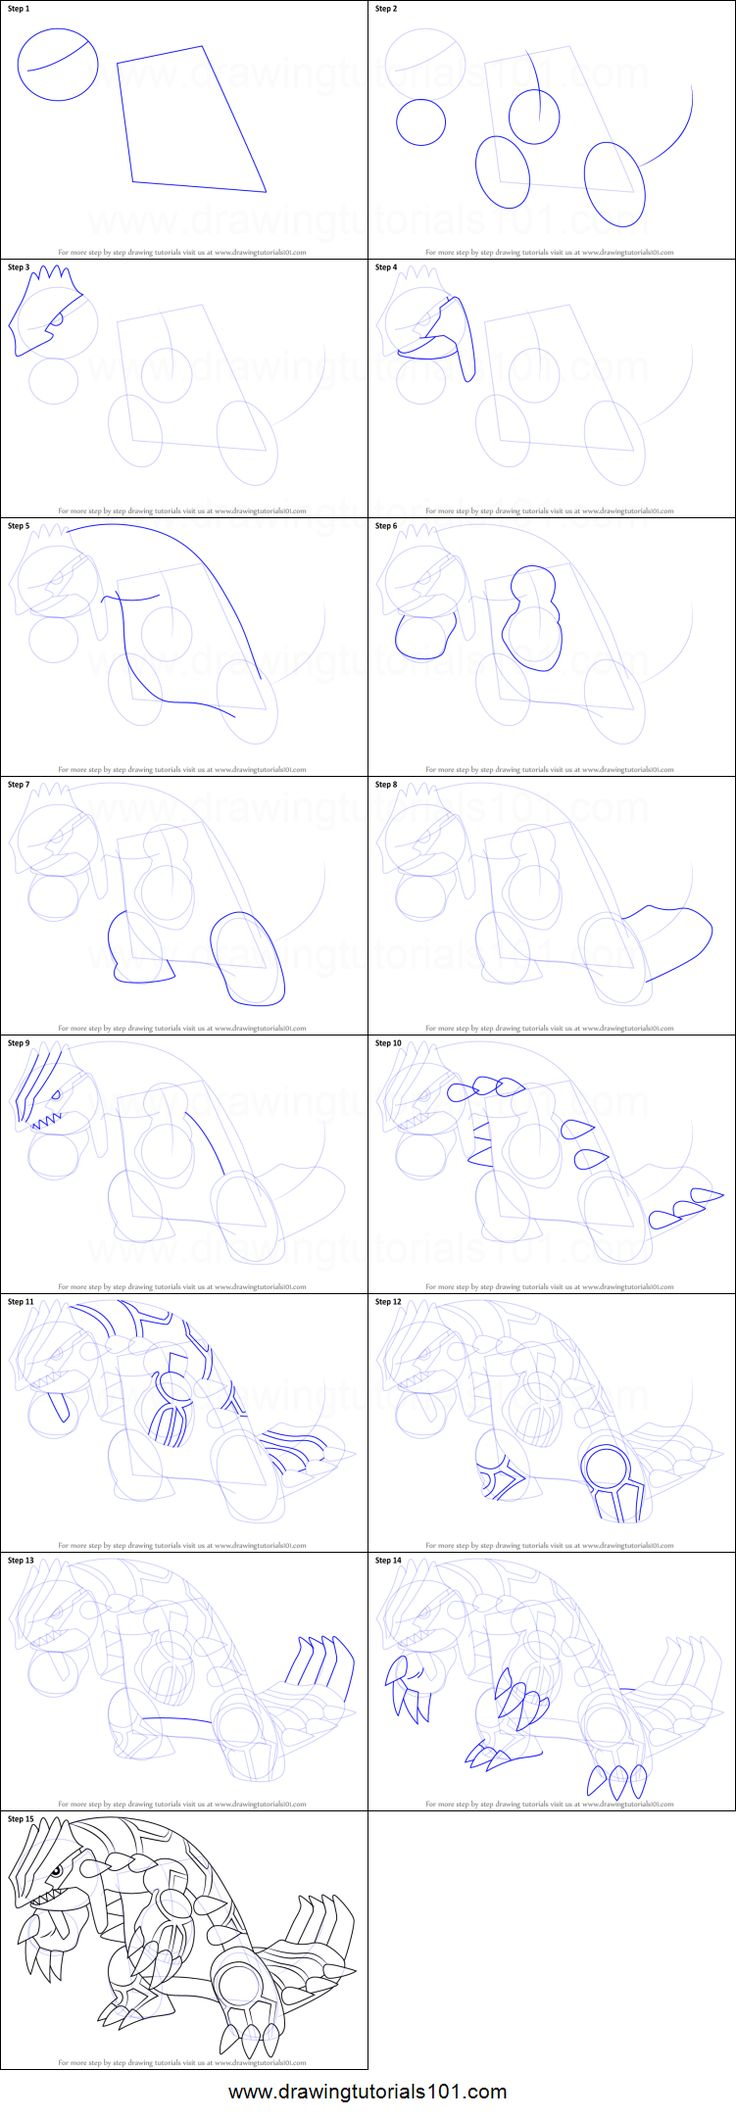 How To Draw Groudon From Pokemon Printable Step By Step Drawing Sheet Drawingtutorials101 Com Drawing Sheet Drawings Pokemon Drawings